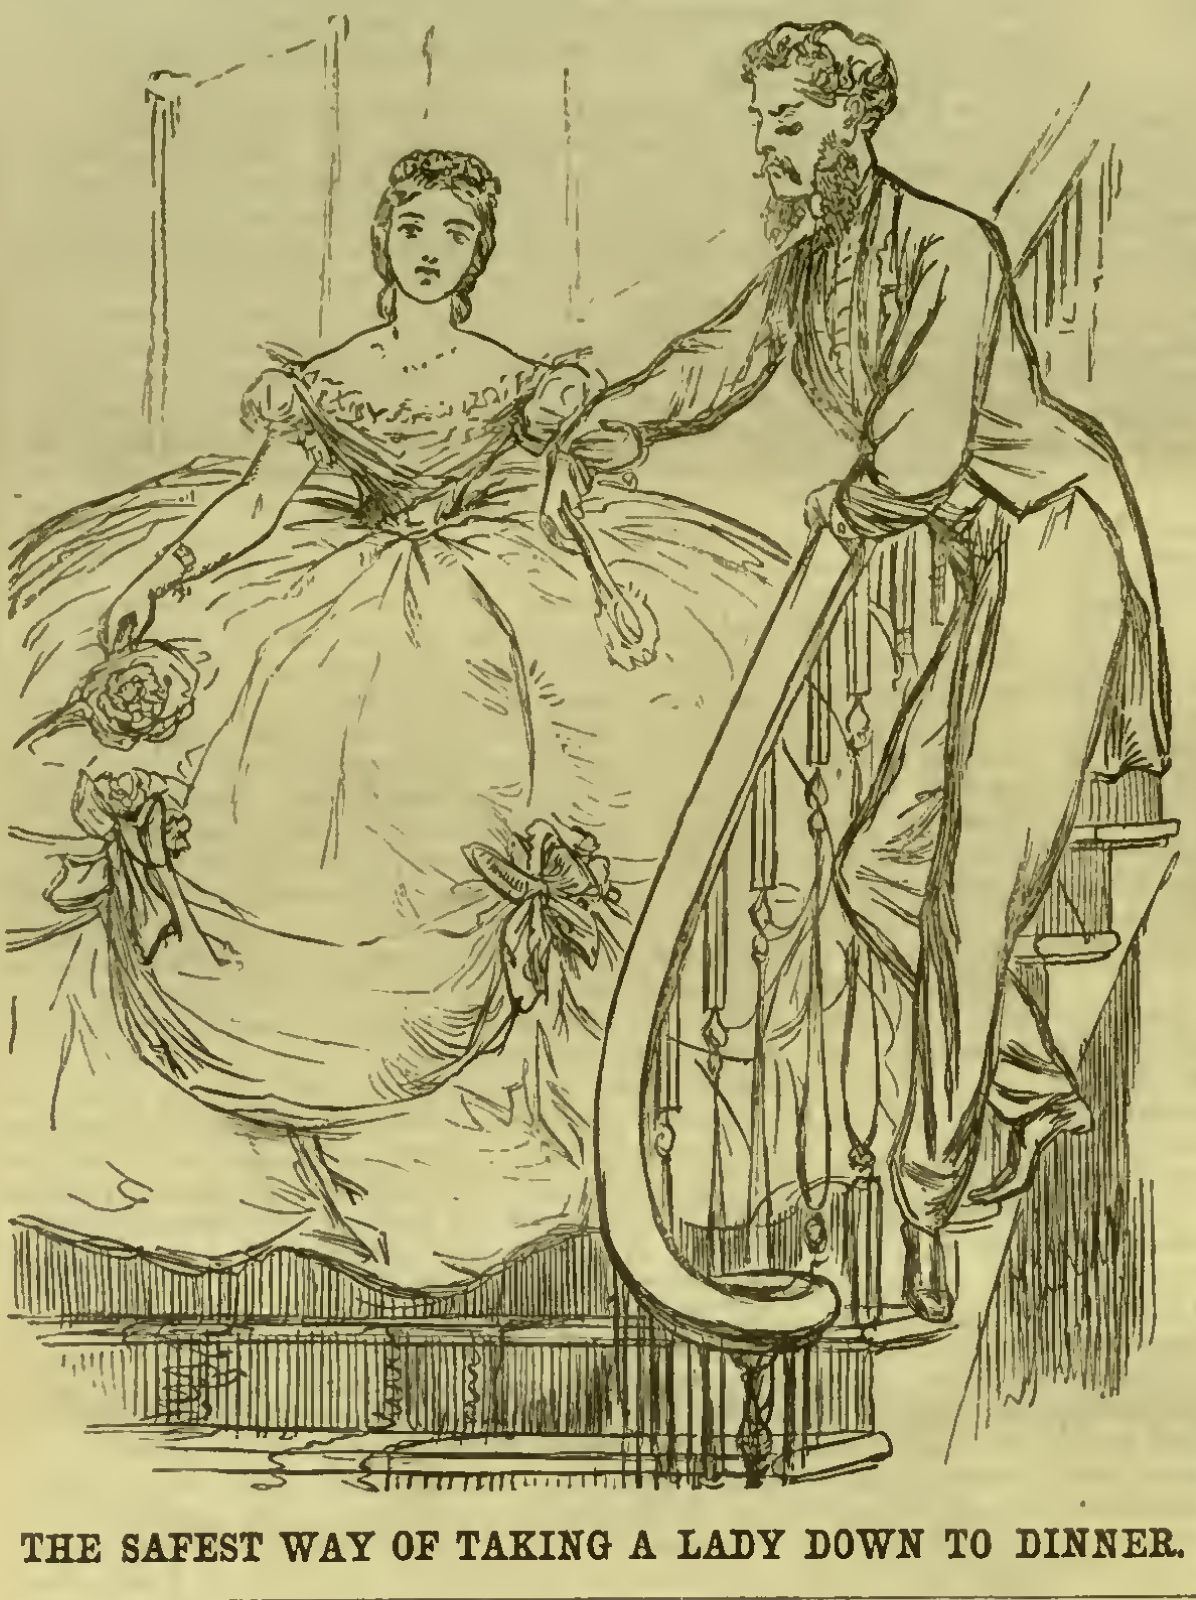 Unknown Artist, 'The Safest Way of Taking a Lady Down to Dinner' from 'Punch Magazine', 1864. Photo: pioneerproject.org